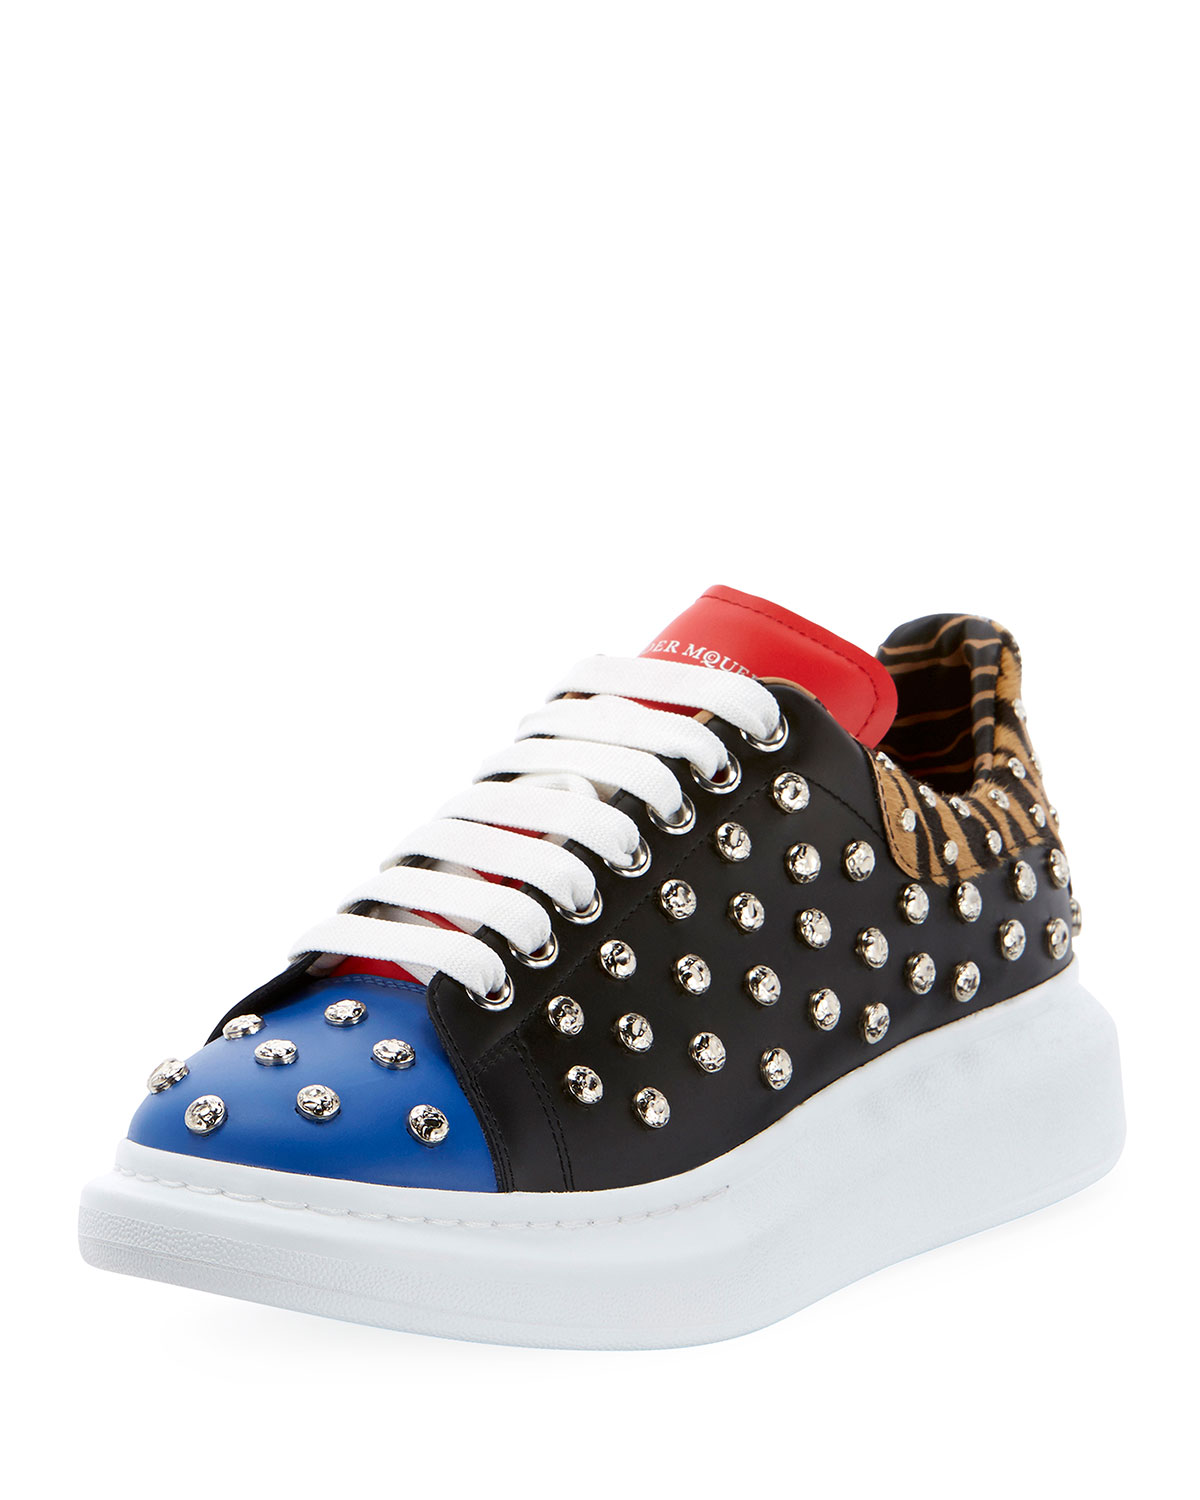 ALEXANDER MCQUEEN Men'S Studded Leather Low-Top Sneakers With Oversize Sole in Red